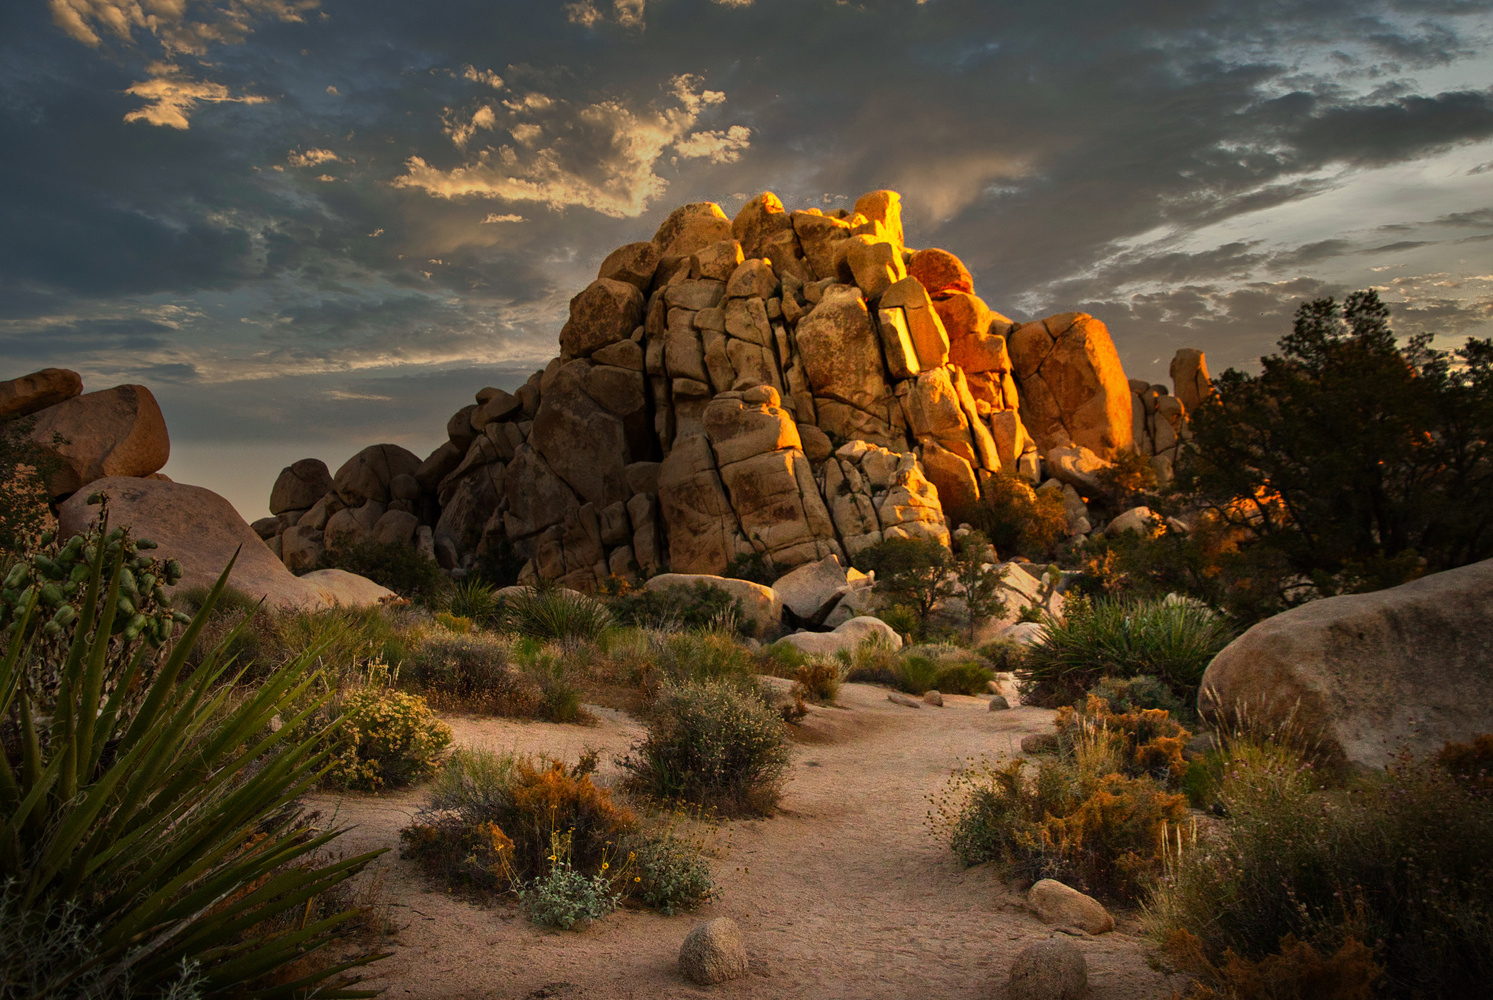 Sunset-Joshua Tree by J. Daniel Jenkins